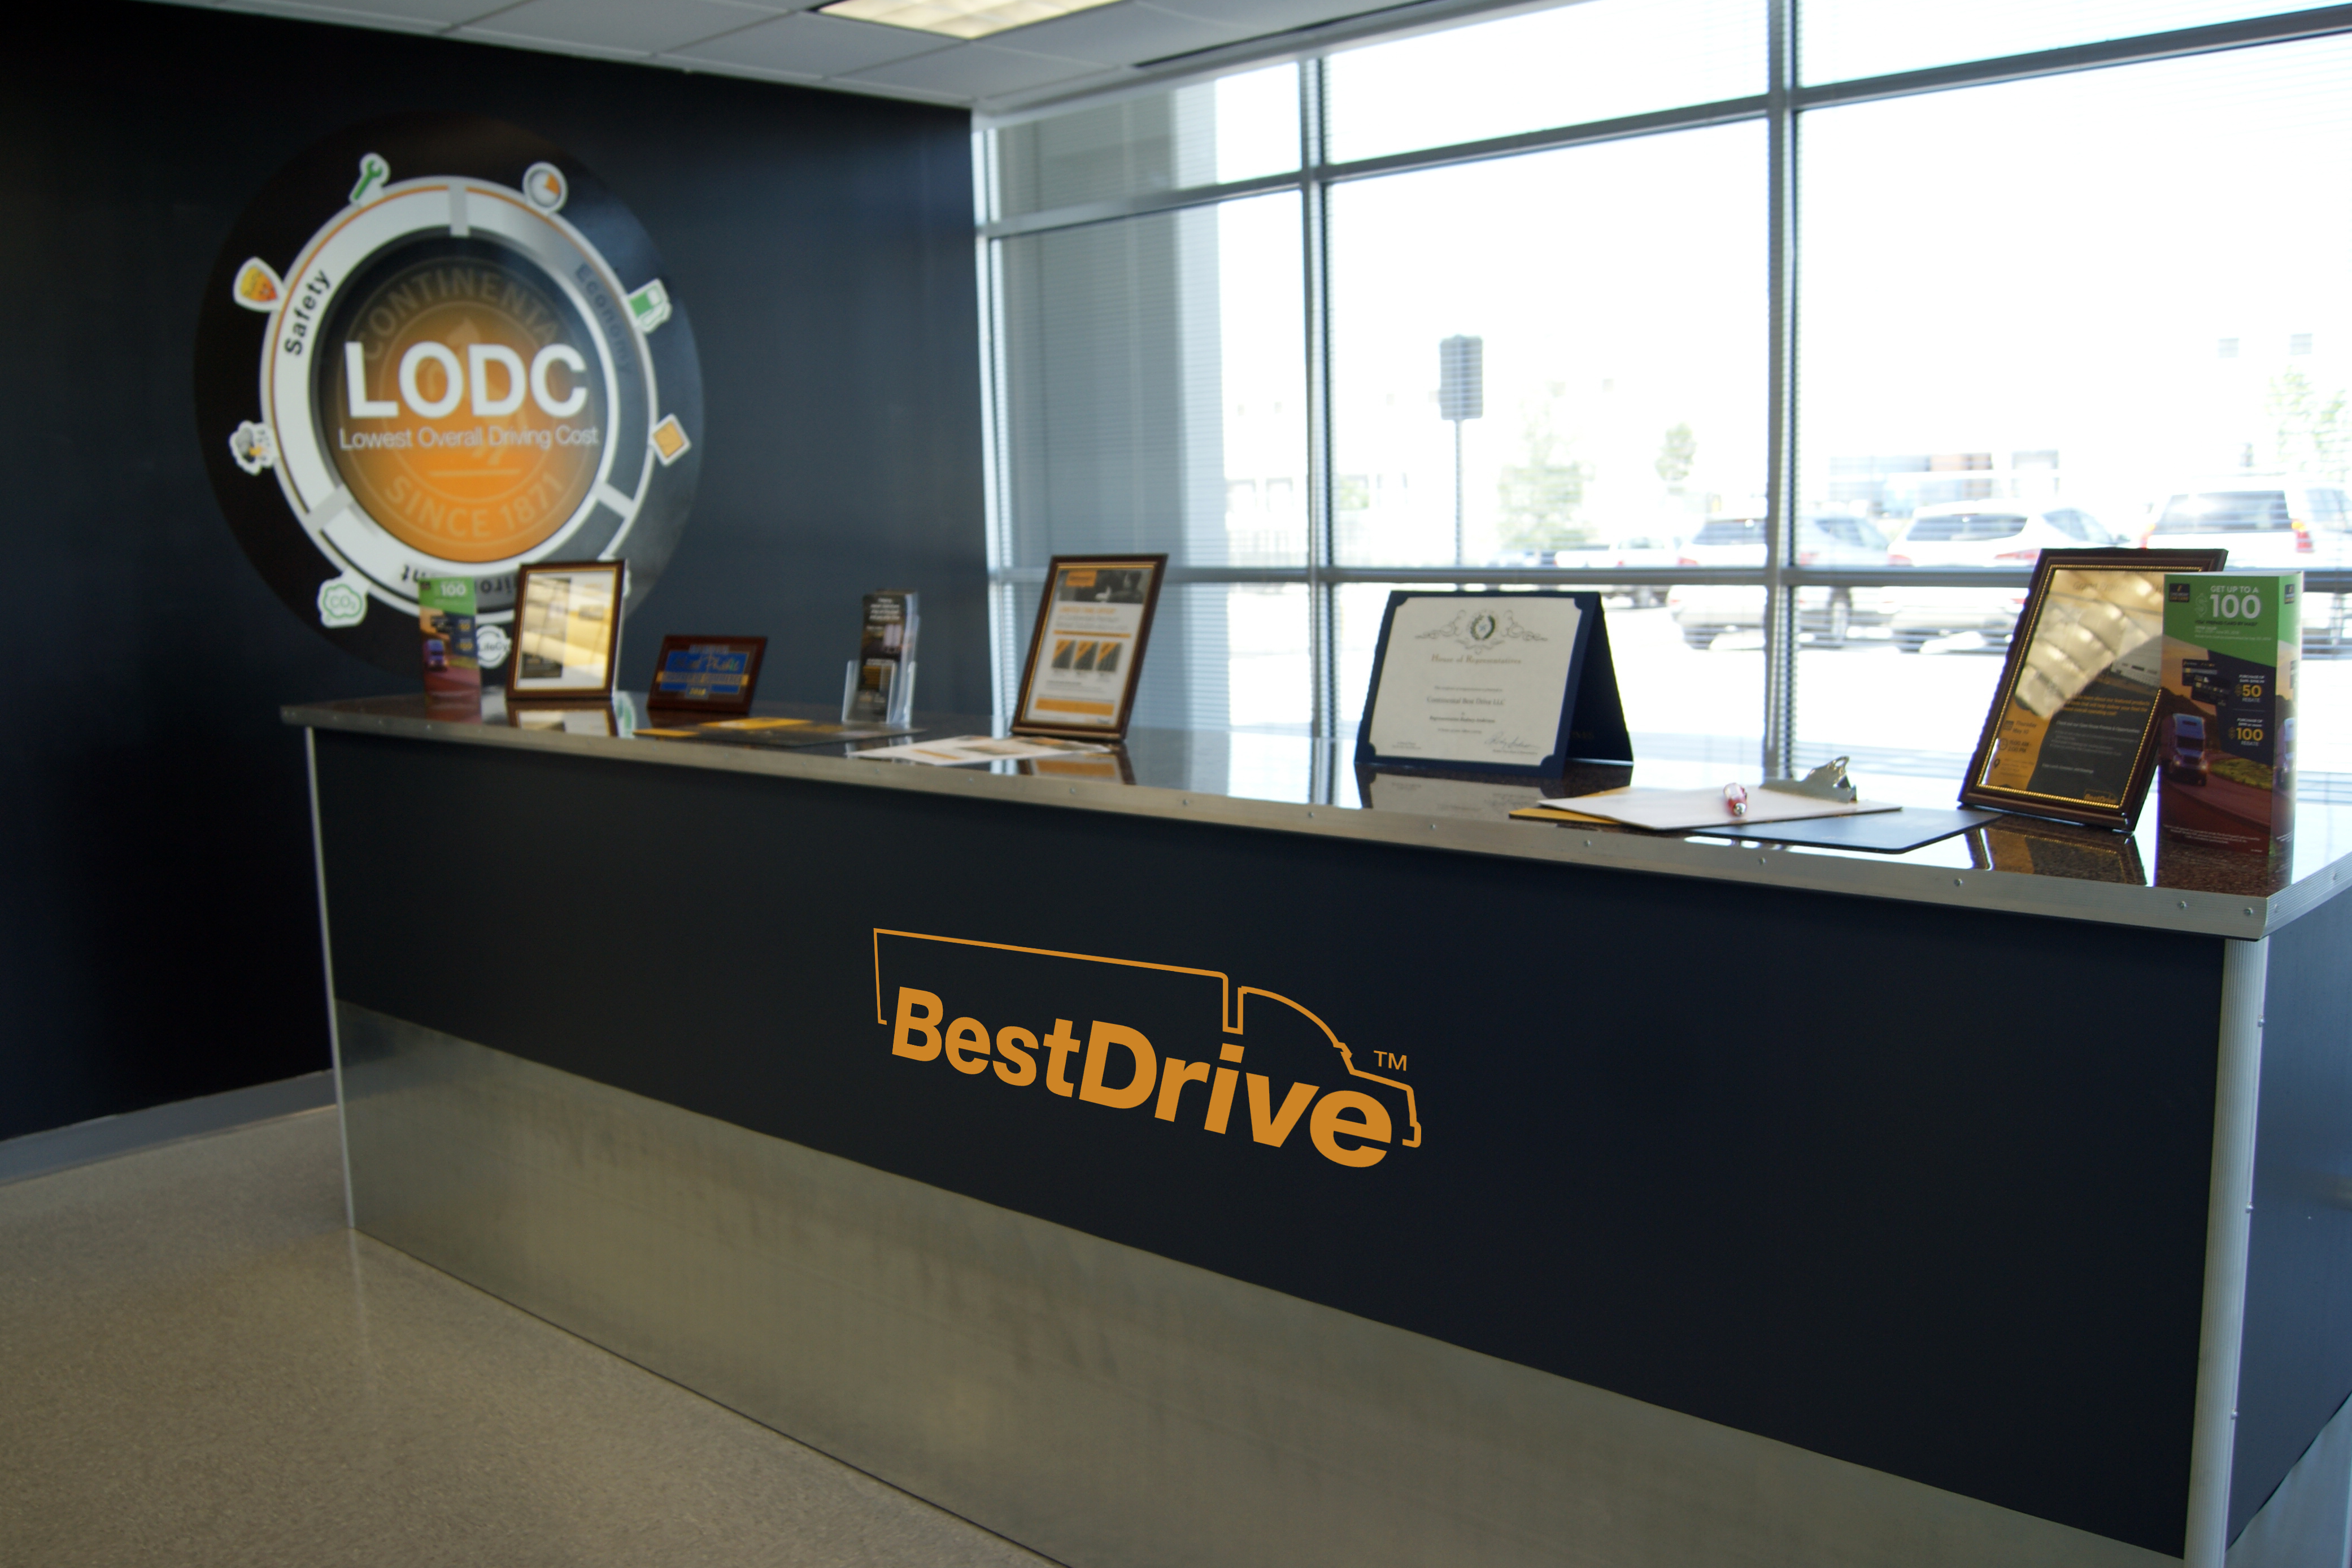 BestDrive Continues Expansion and Opens 2 Locations in Texas